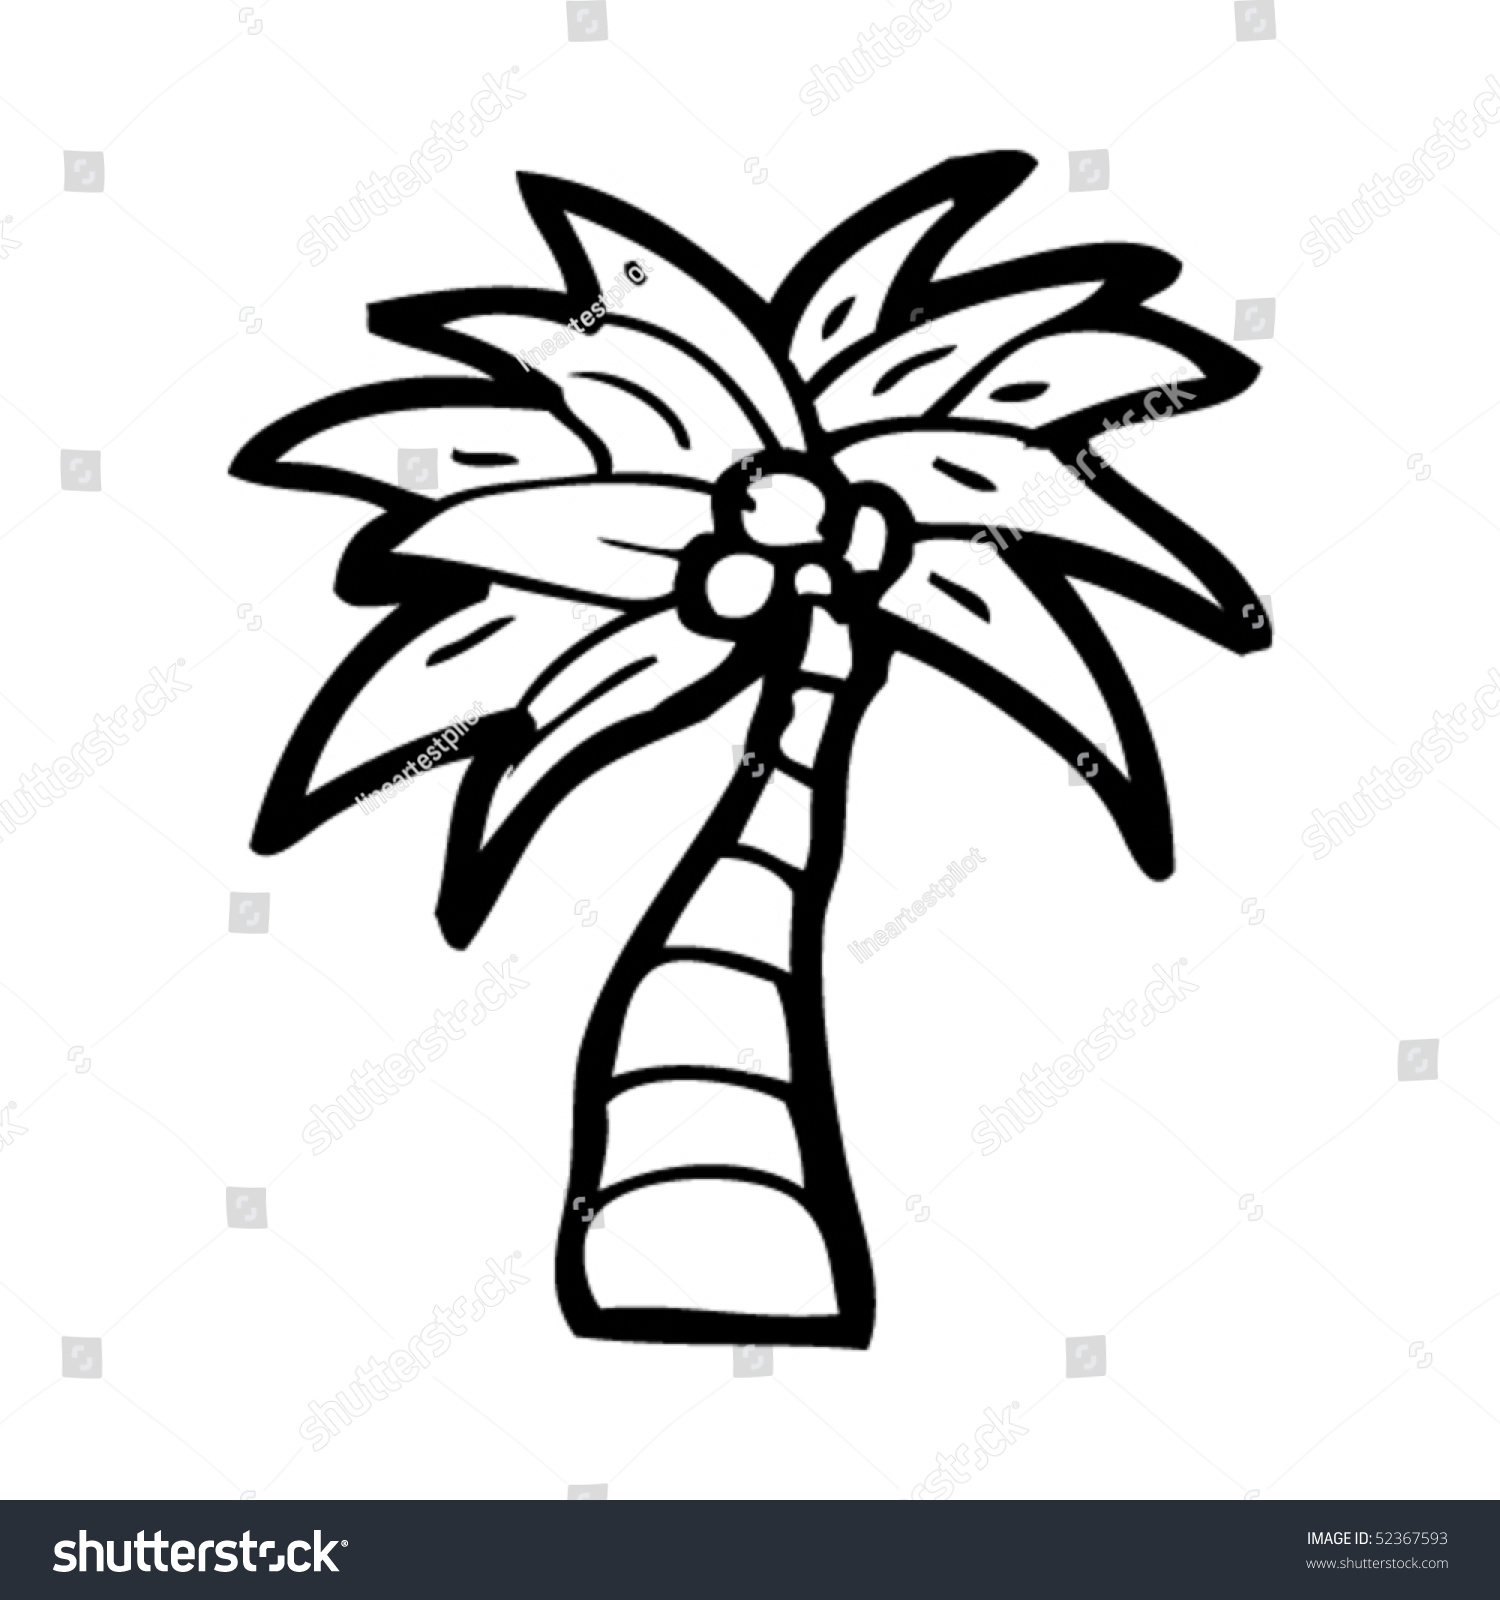 palm tree with coconuts drawing - photo #22